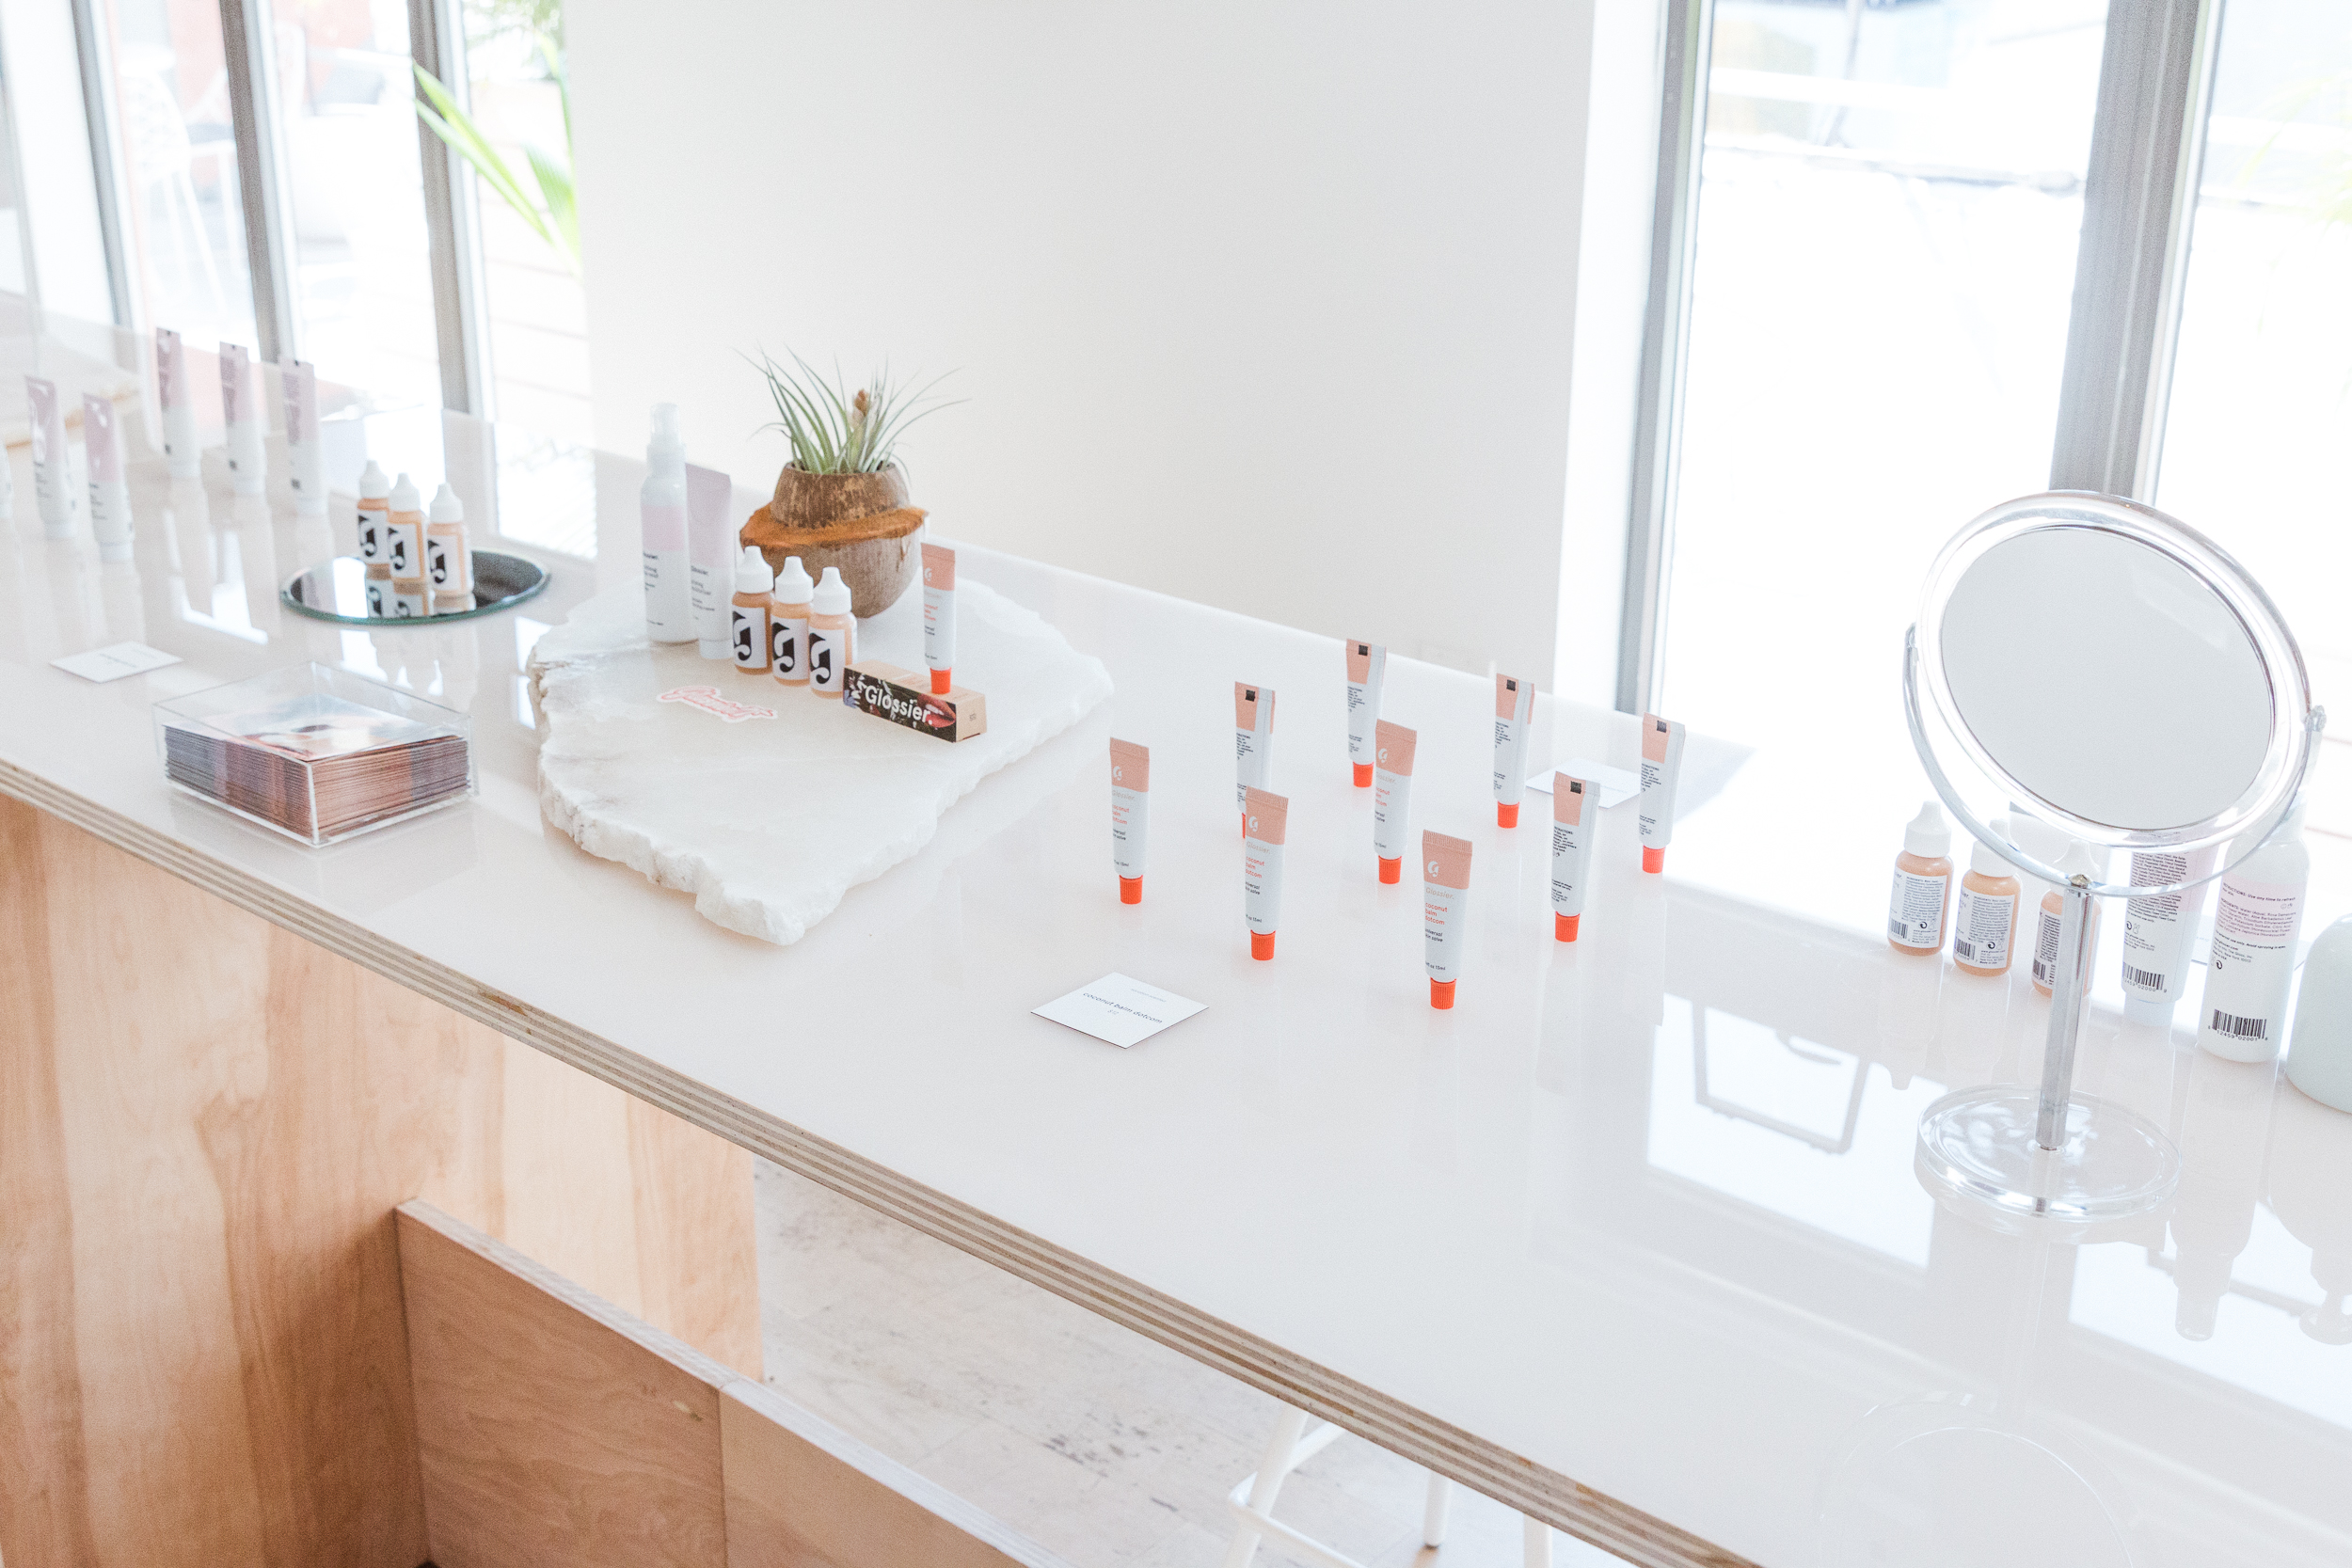 Racked — Emily Weiss On Opening Glossier's Headquarters To The Public - Online businesses dipping their toes into offline waters often use office space as a retail testing ground: Warby Parker, Bonobos, BaubleBar, and others have all welcomed customers to their HQs in similar ways.